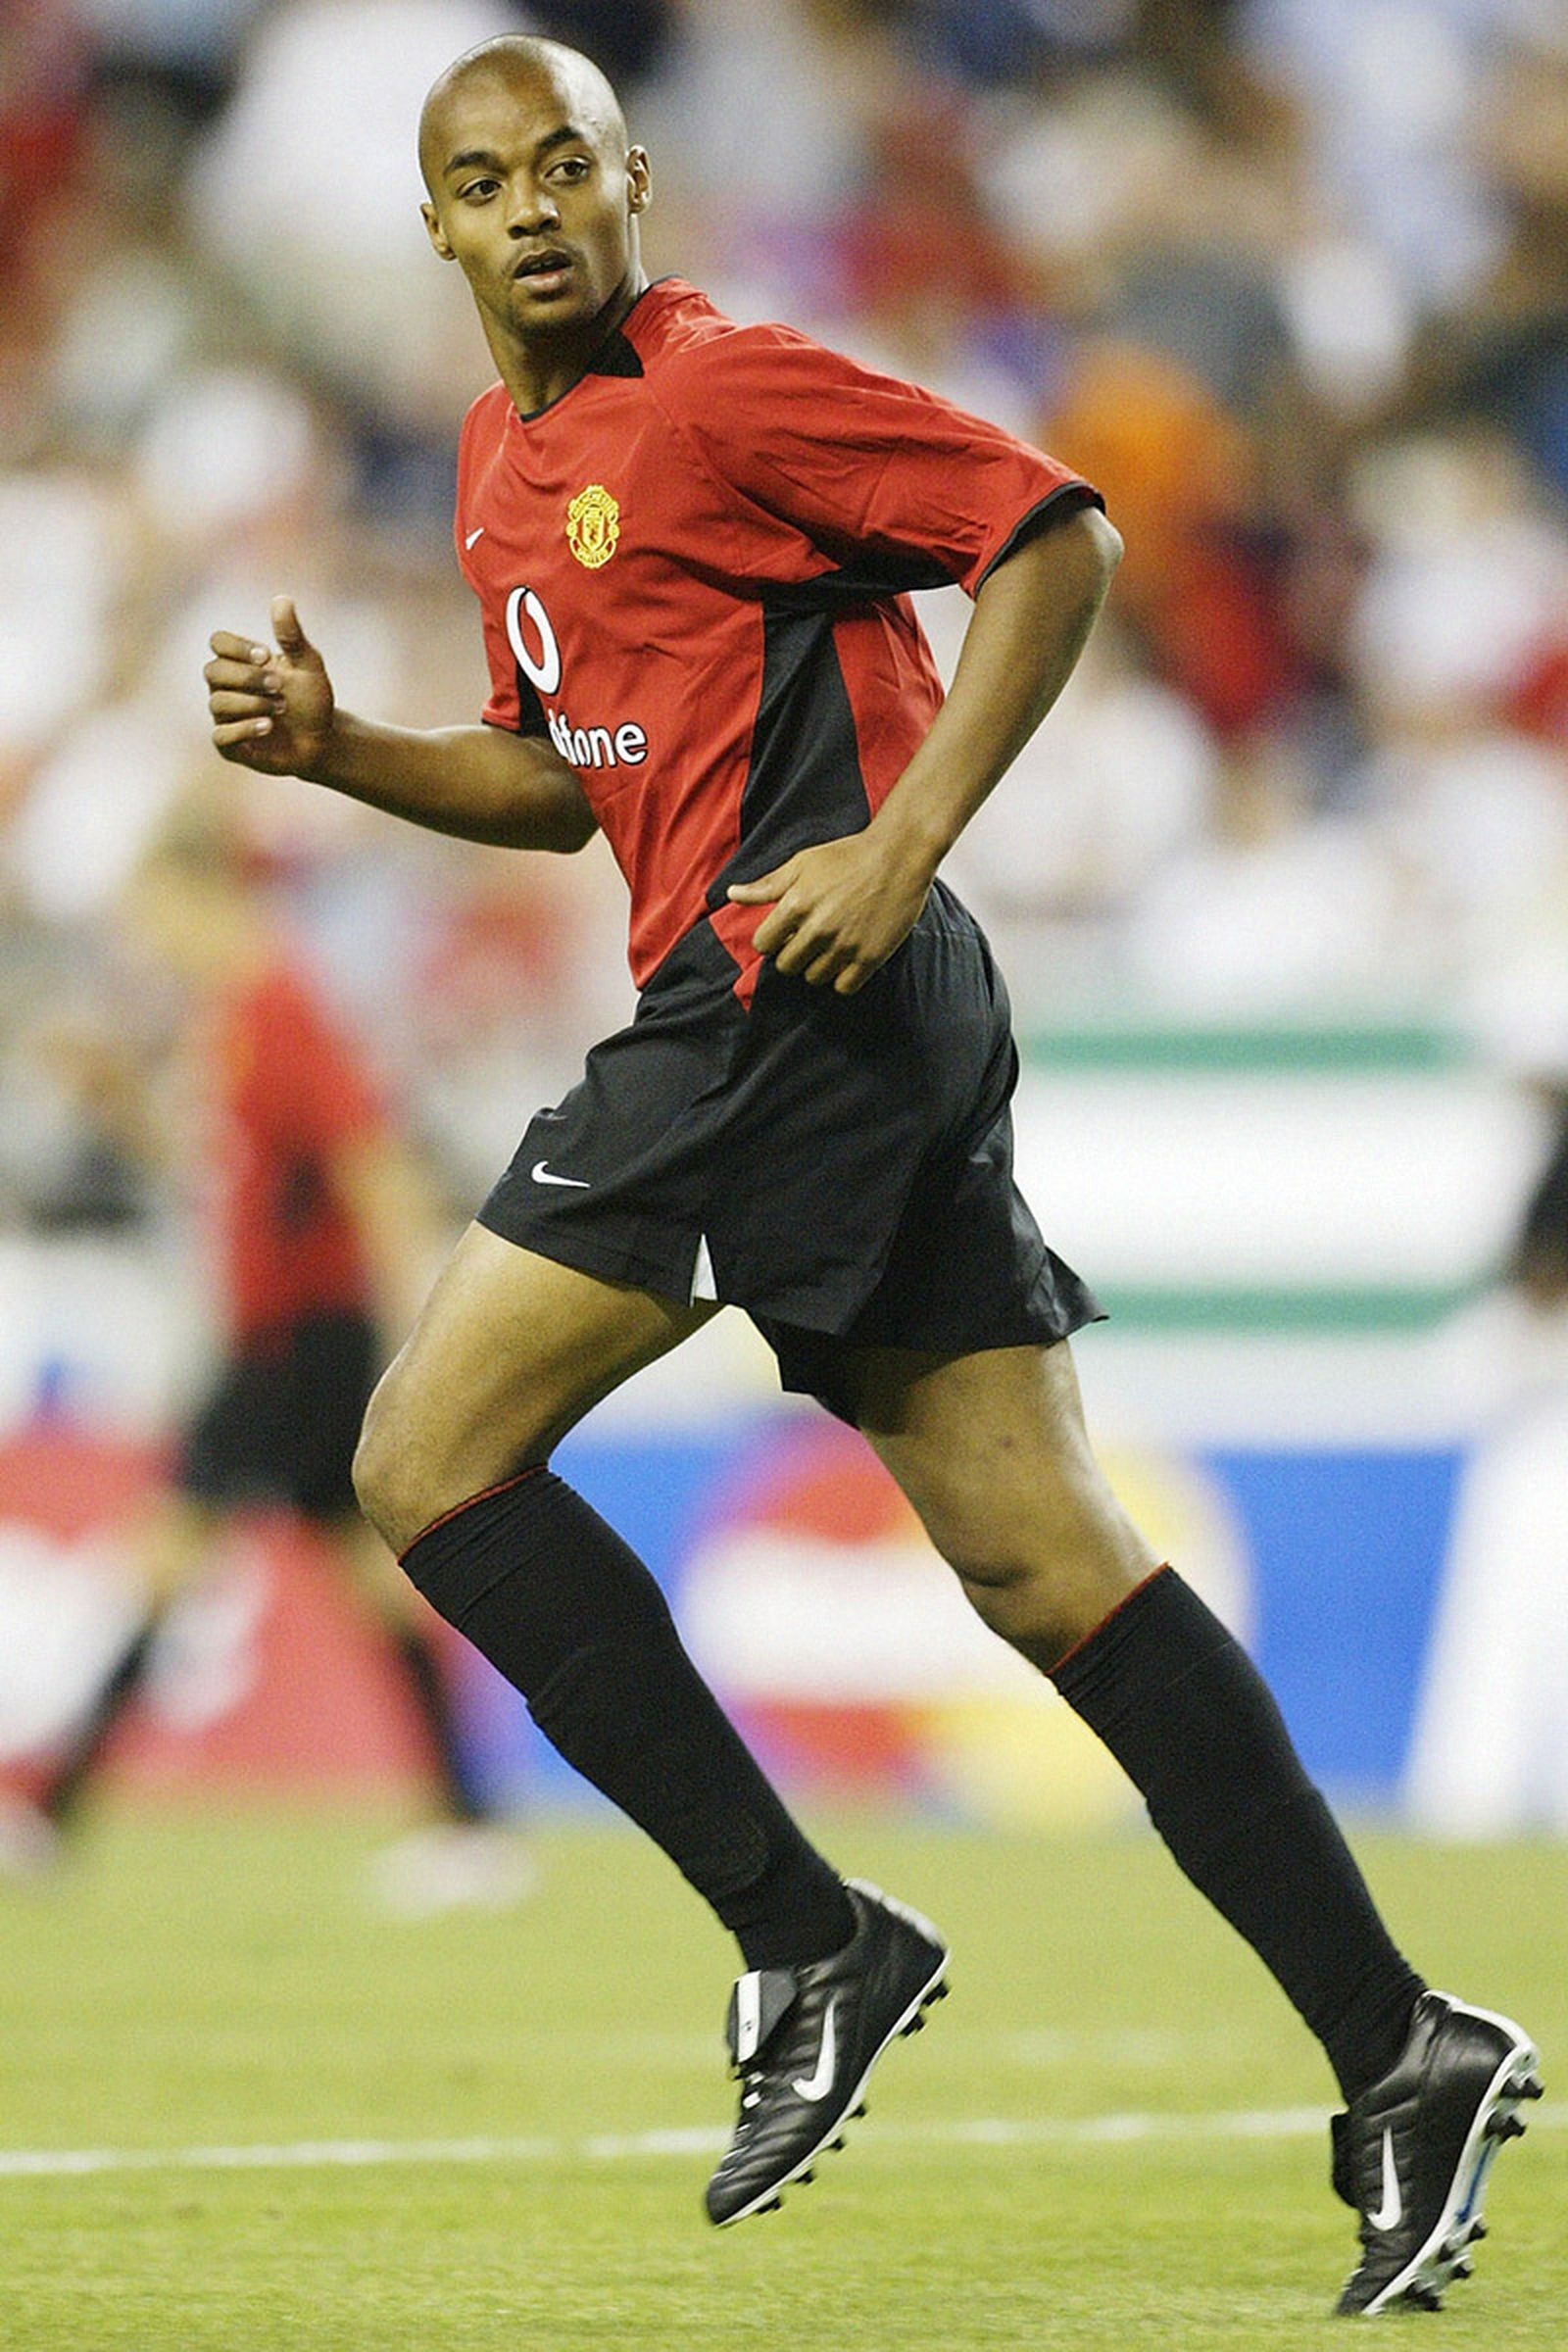 David Bellion of Manchester United in action during the Champions World Series game between Manchester United and Celtic on July 23, 2003 .